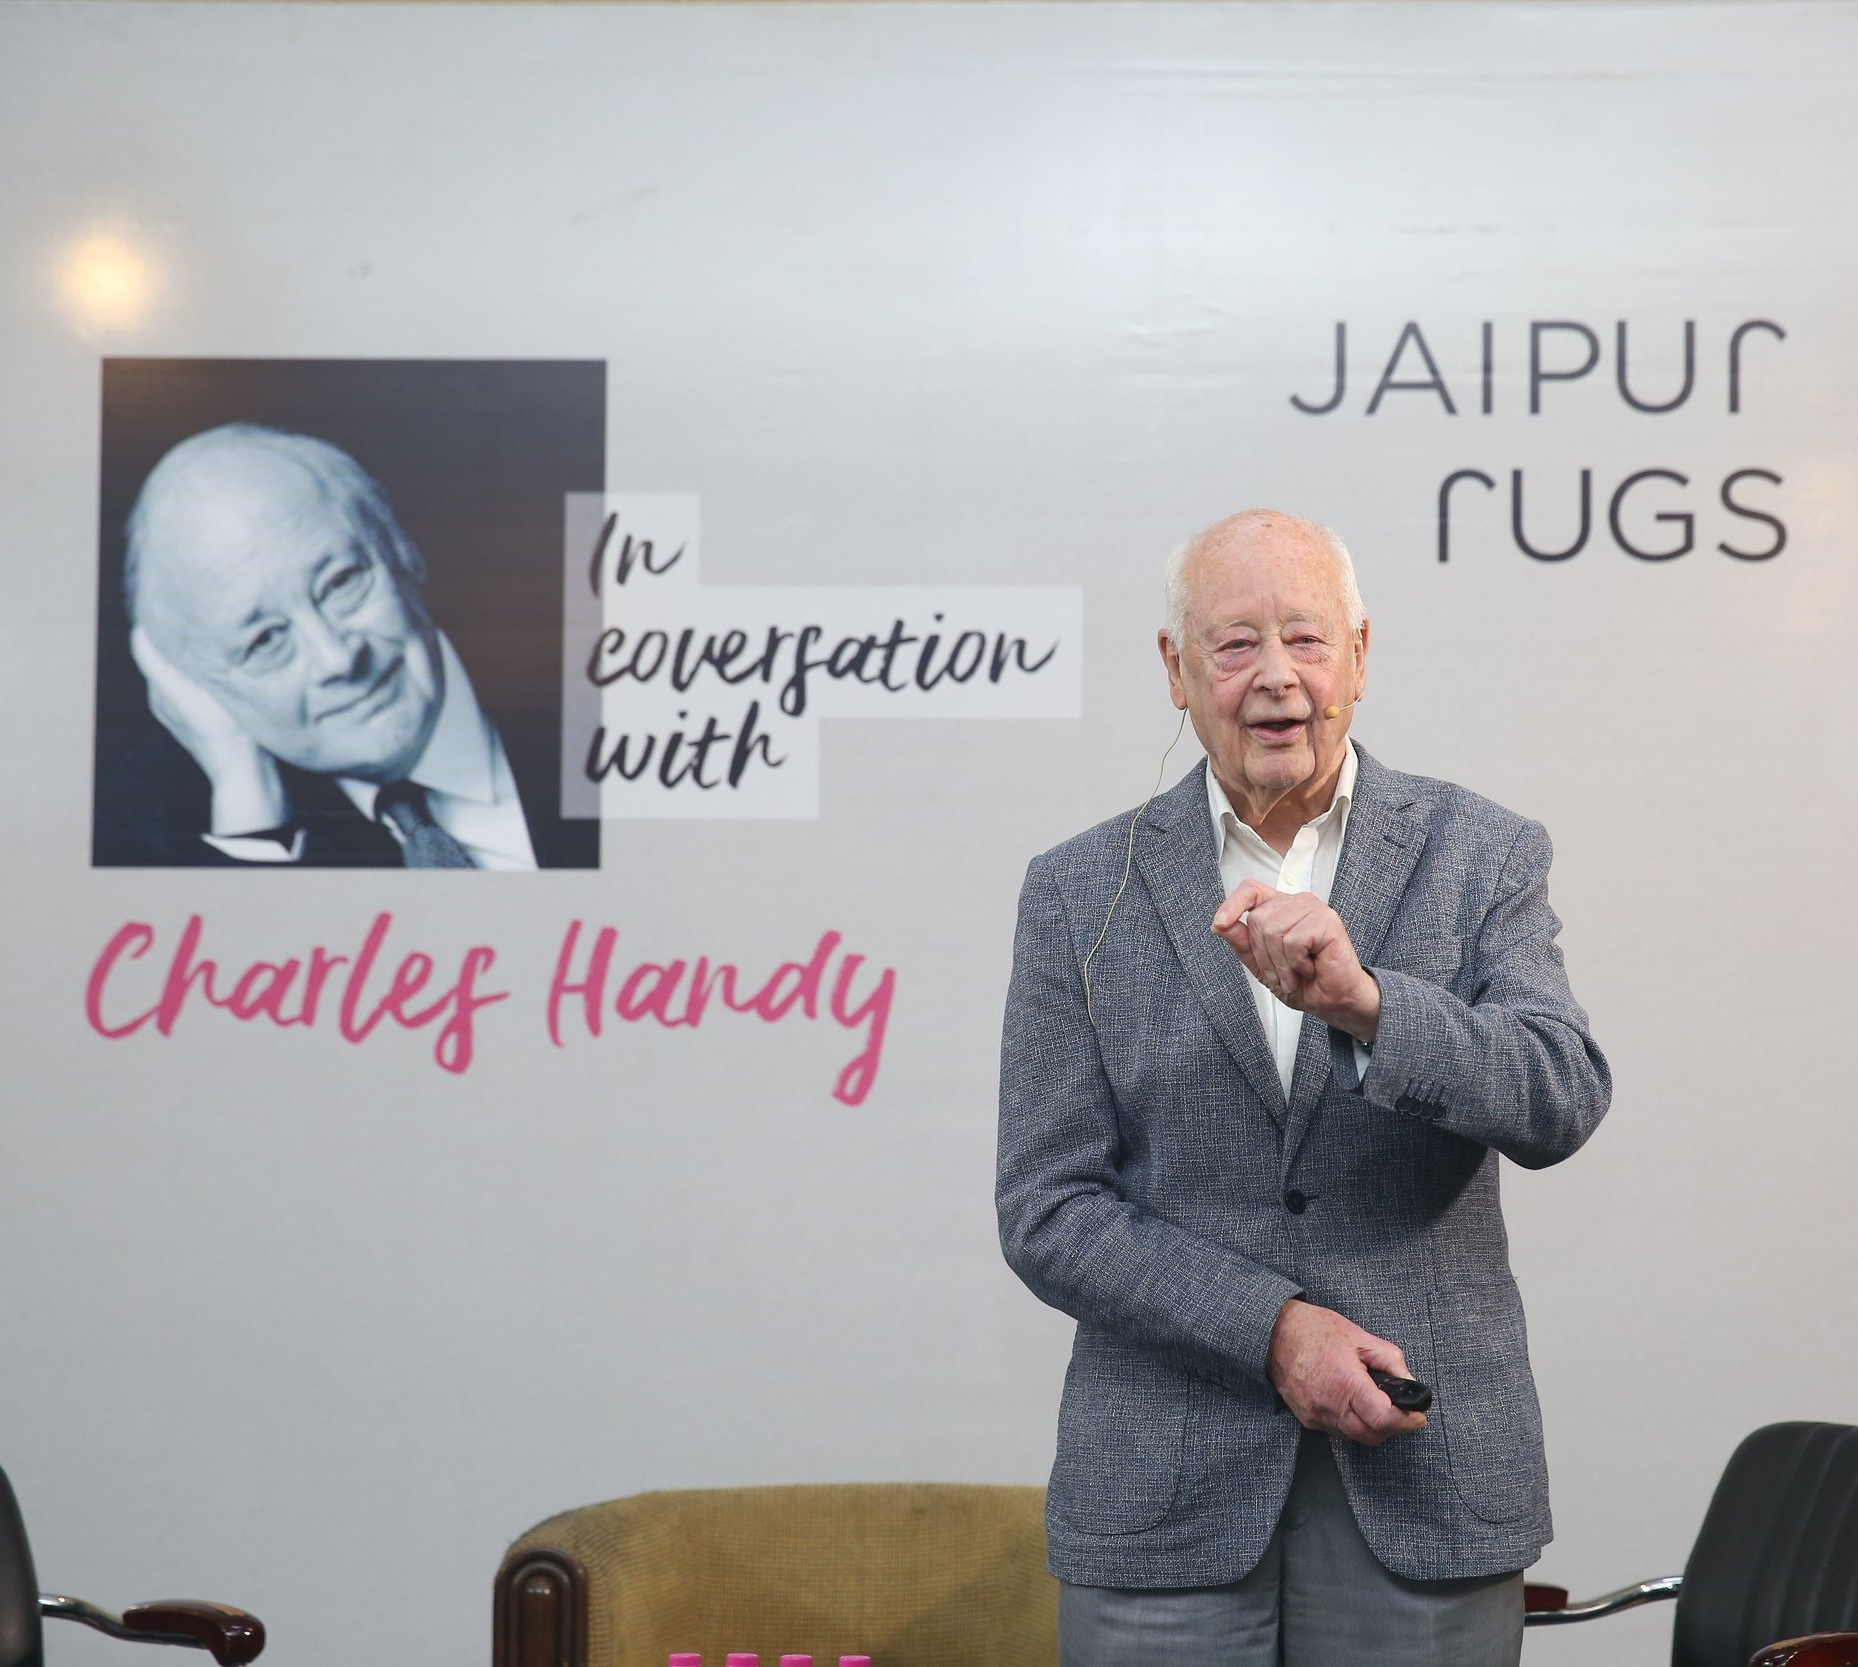 Speaking at international events - Charles Handy recently spoke at a special event in Jaipur with over 60 organisational leaders. This attracted a lot of media coverage.